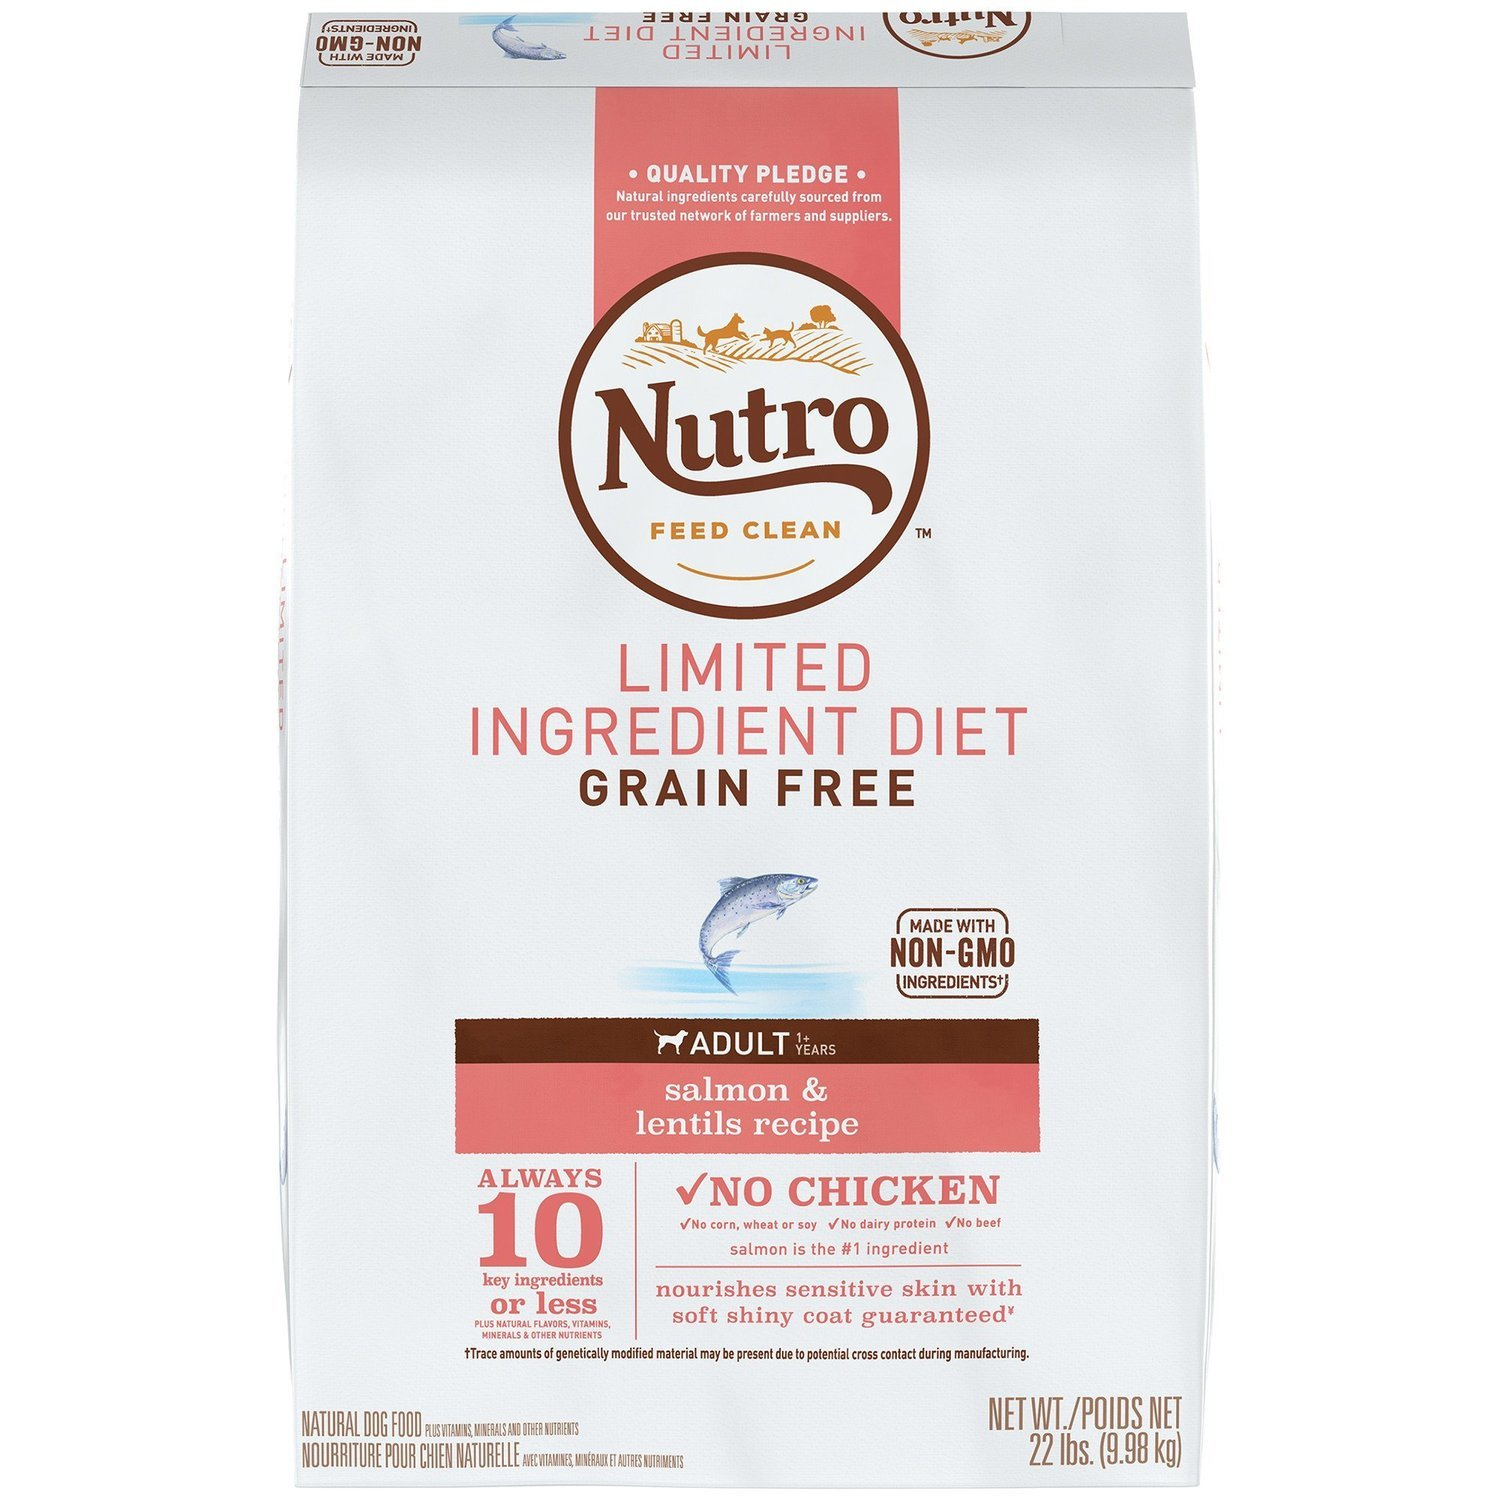 Nutro Limited Ingredient Diet Adult Salmon & Lentils Dog Food Recipe, 22 lbs. (2/19) (A.P1)